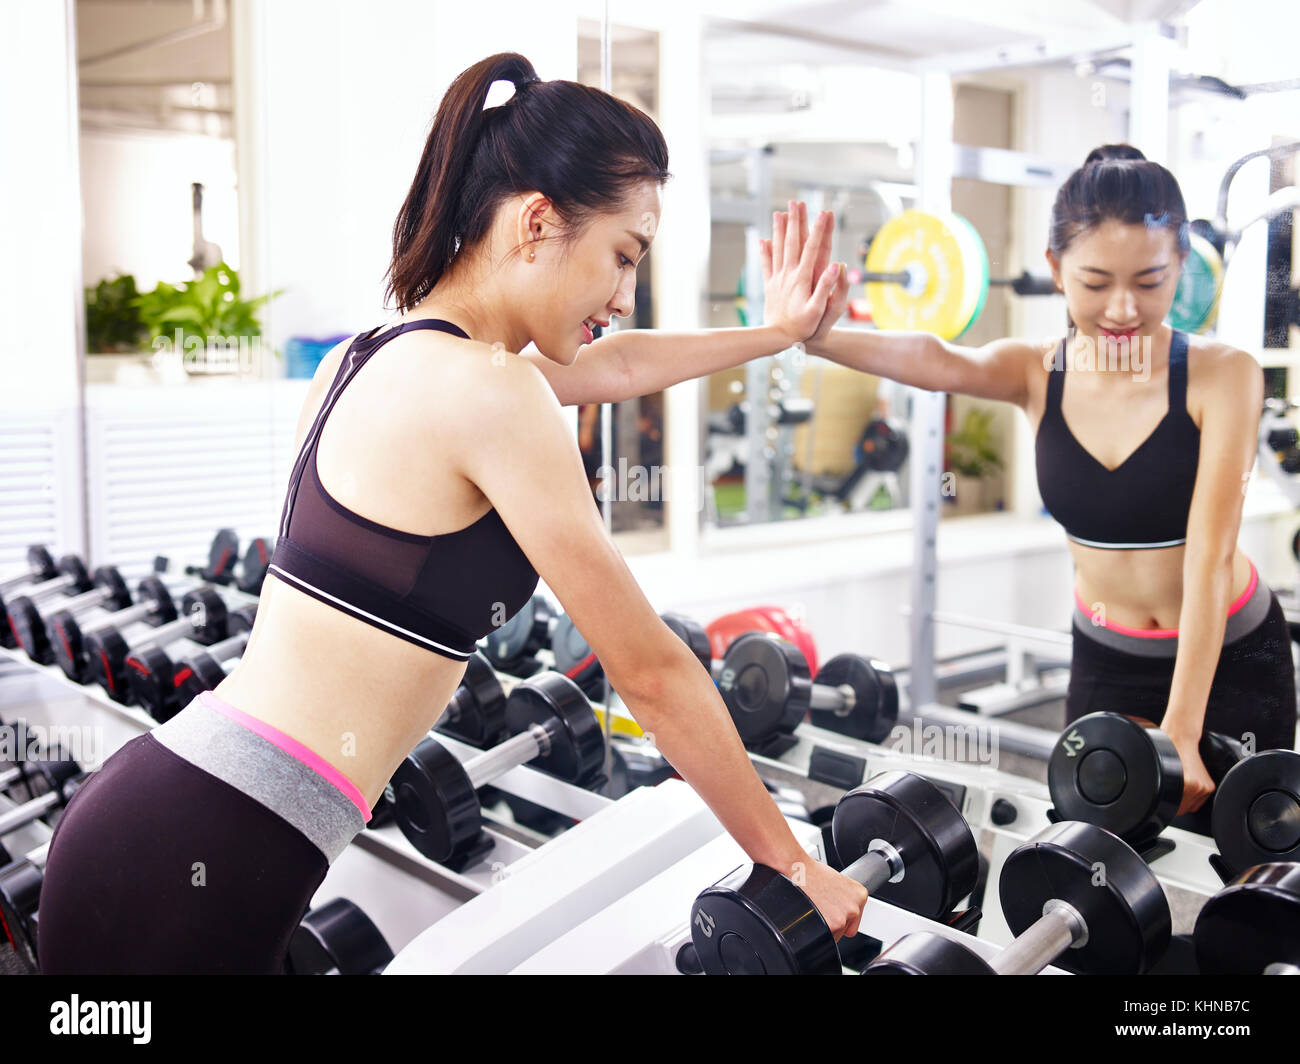 young asian woman working out in fitness center. - Stock Image